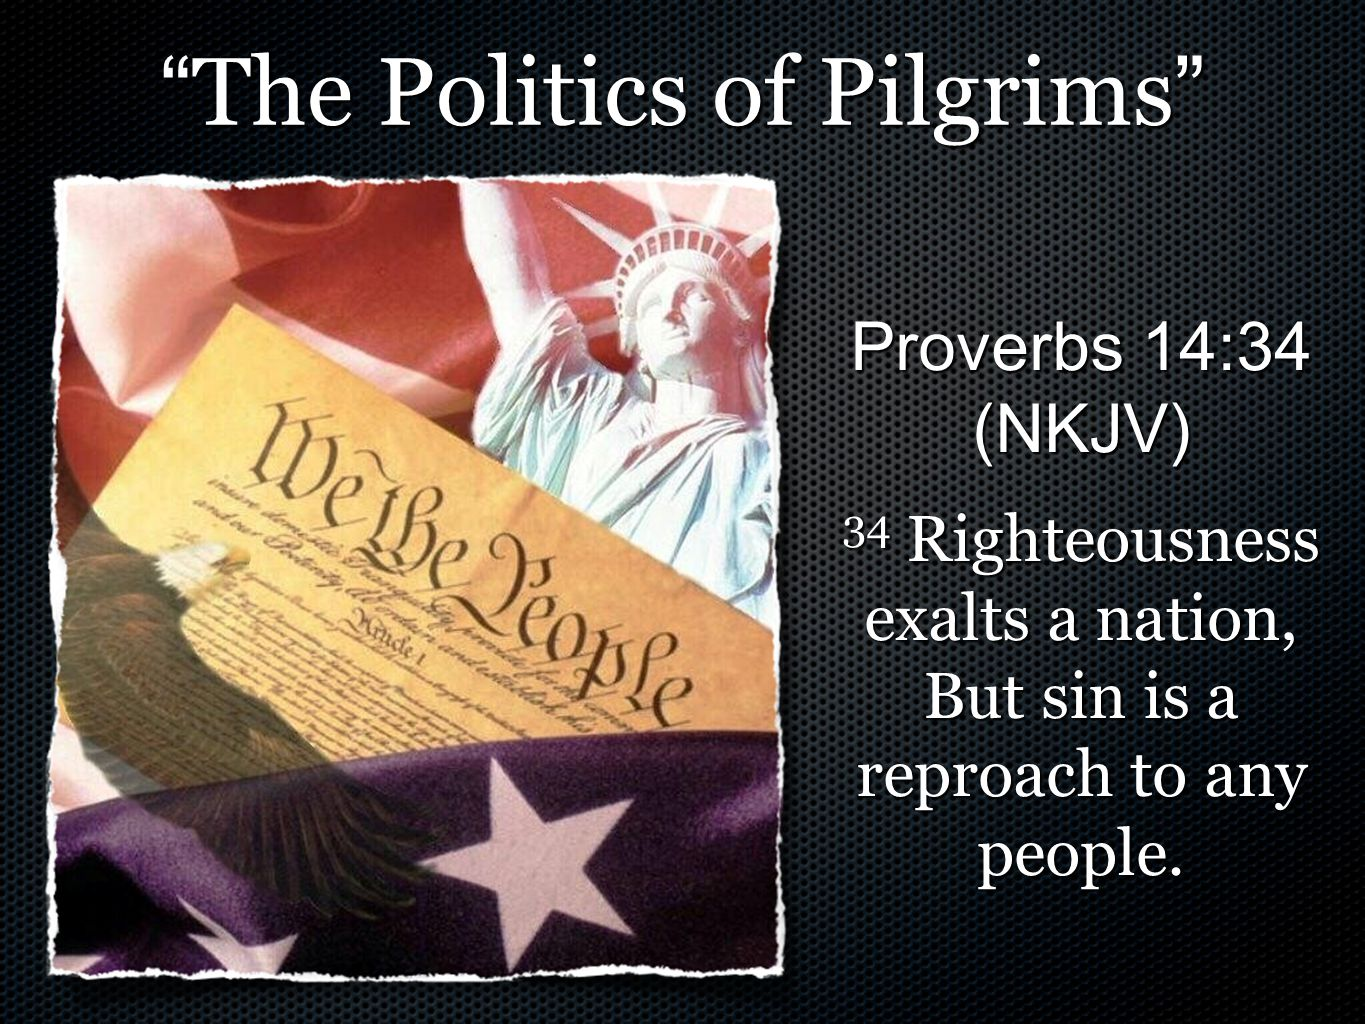 The Politics of Pilgrims Proverbs 14:34 (NKJV) 34 Righteousness exalts a nation, But sin is a reproach to any people.